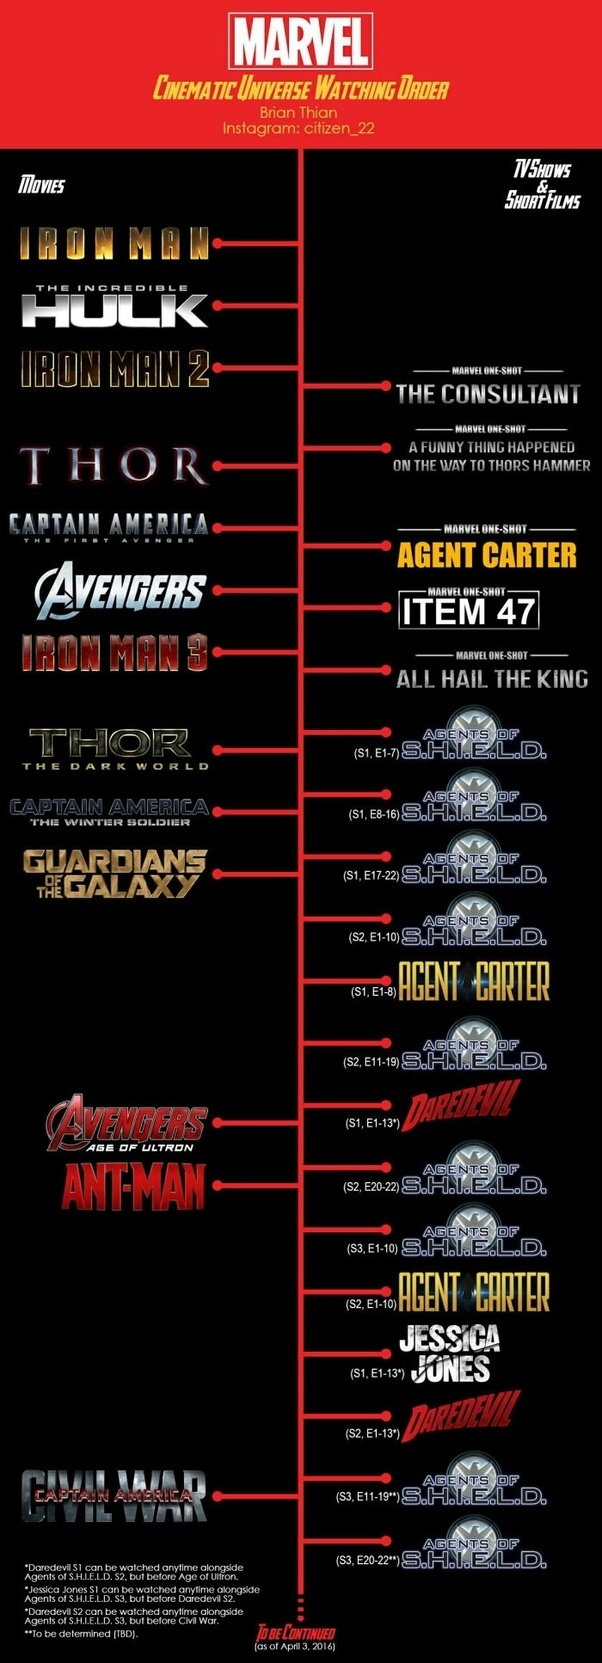 Marvel Release Dates Changed: In What Order Should I Watch The Marvel Cinematic Universe